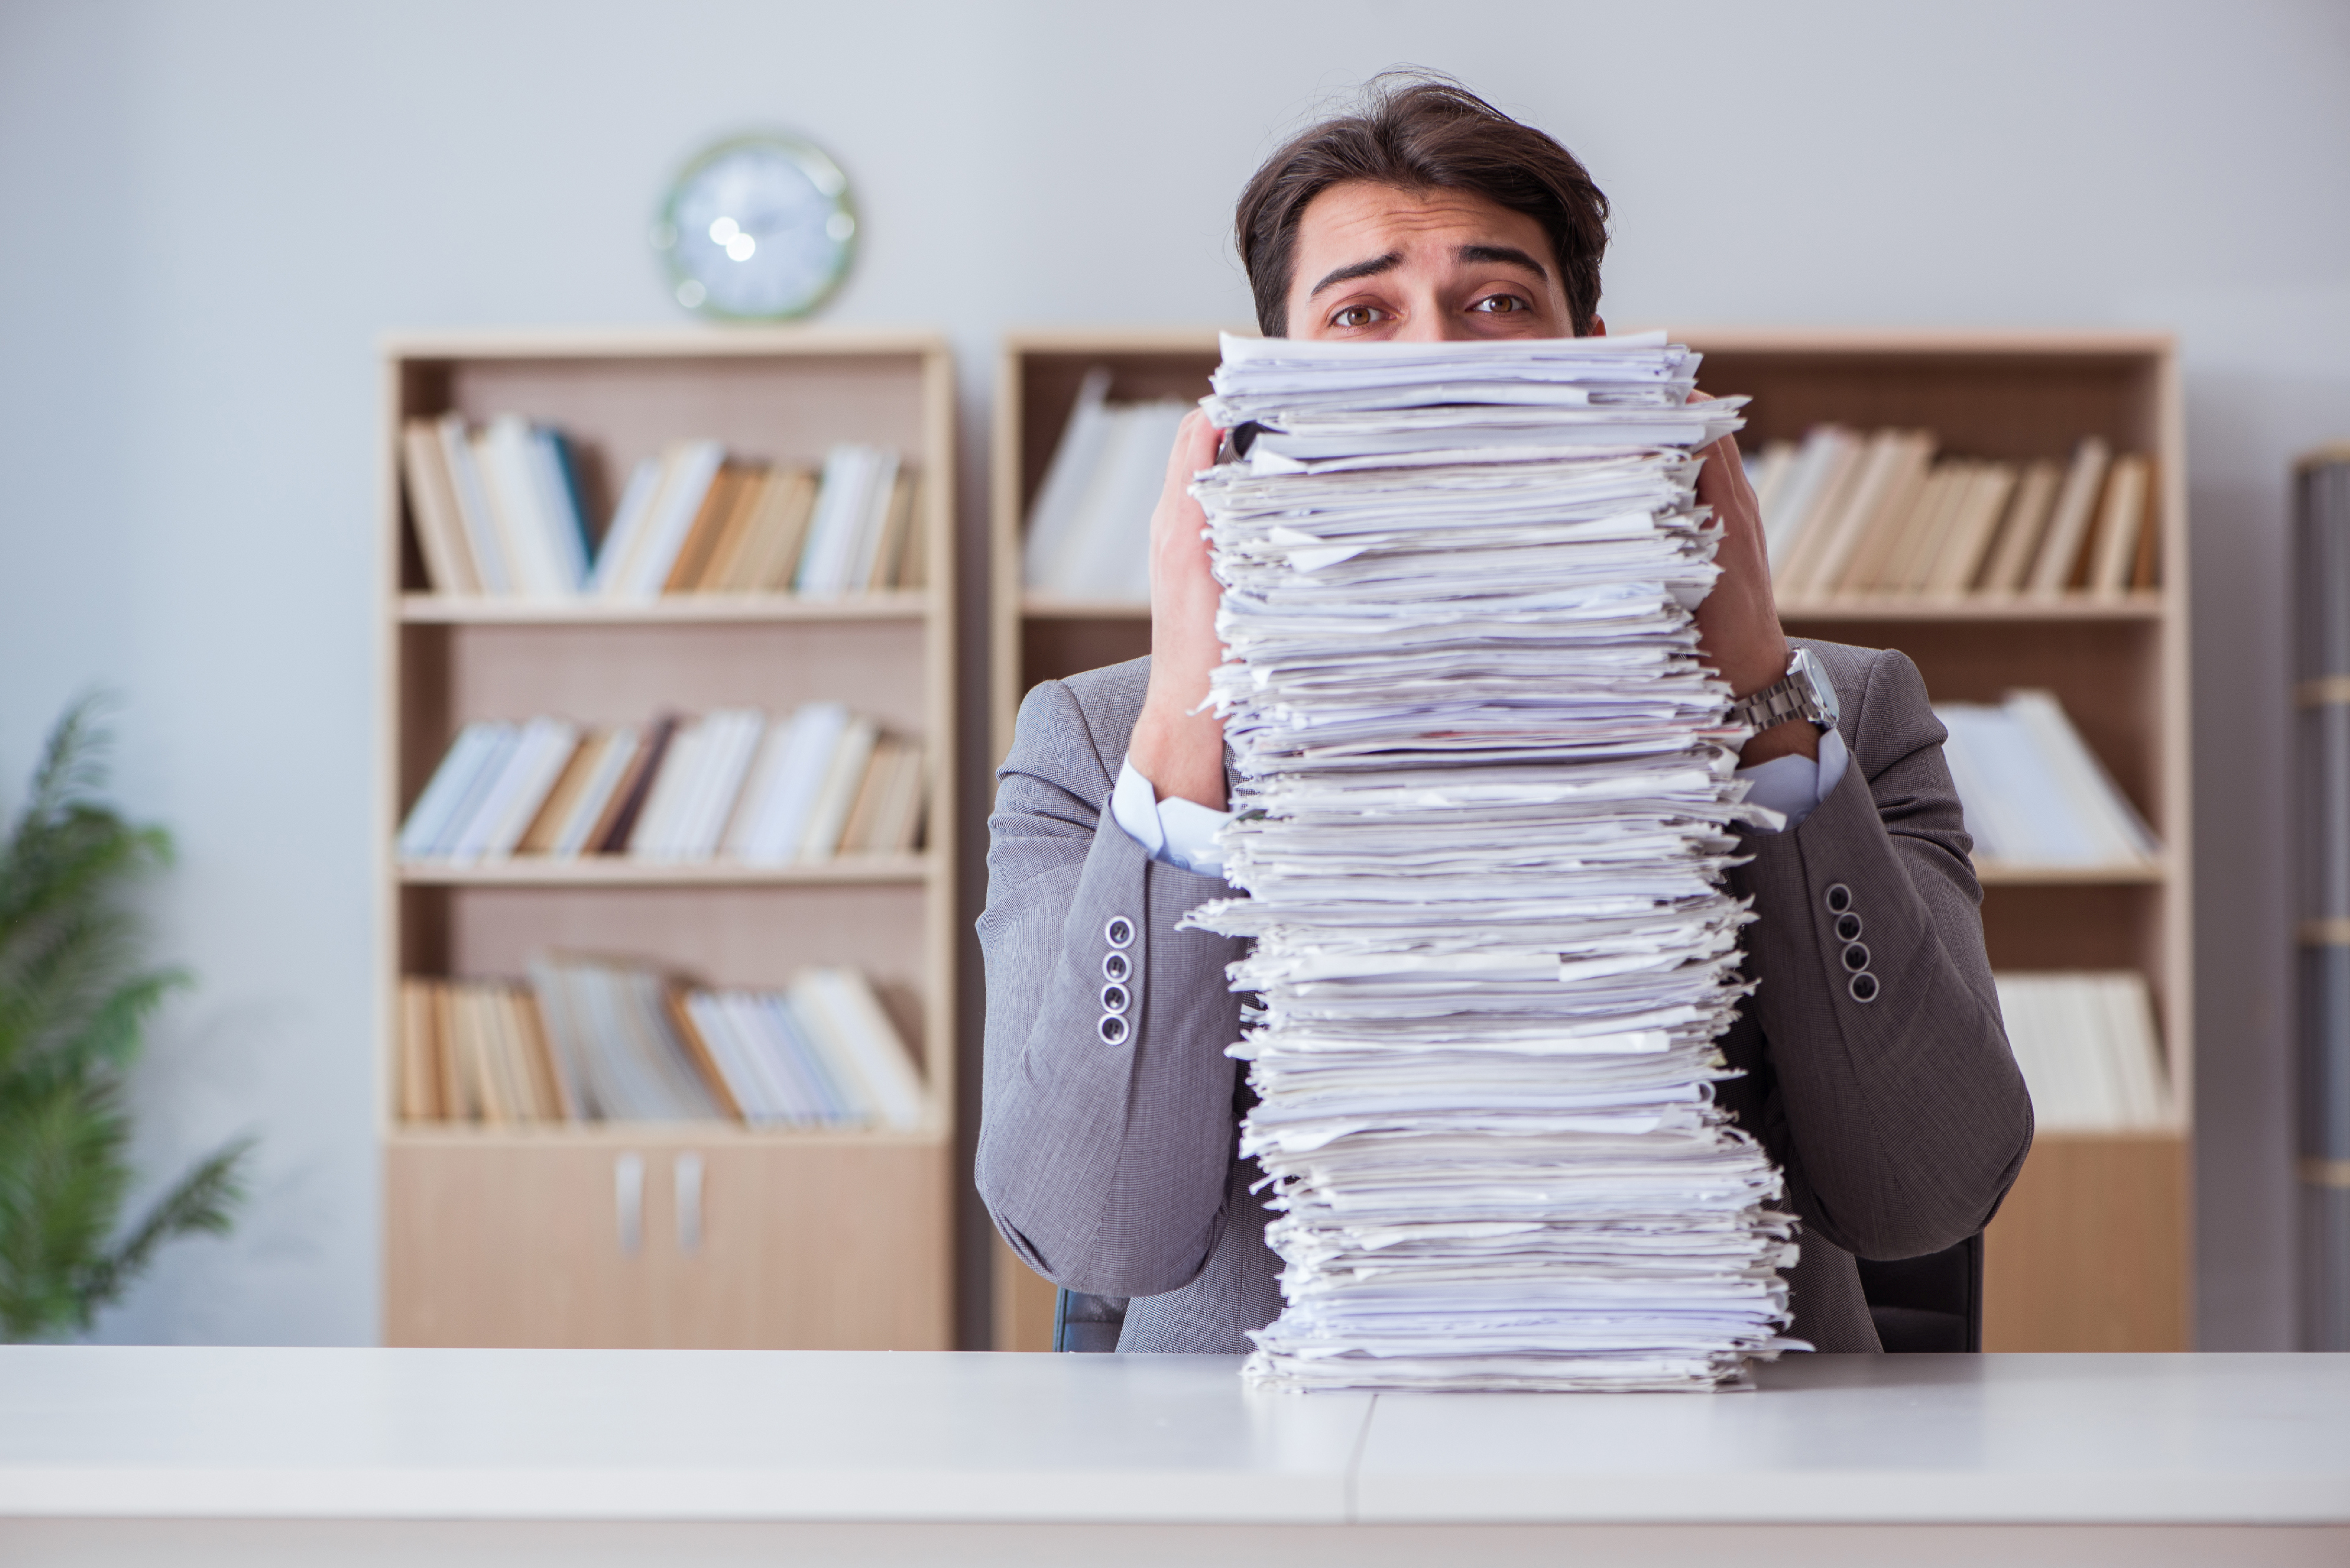 Overwhelmed by documents